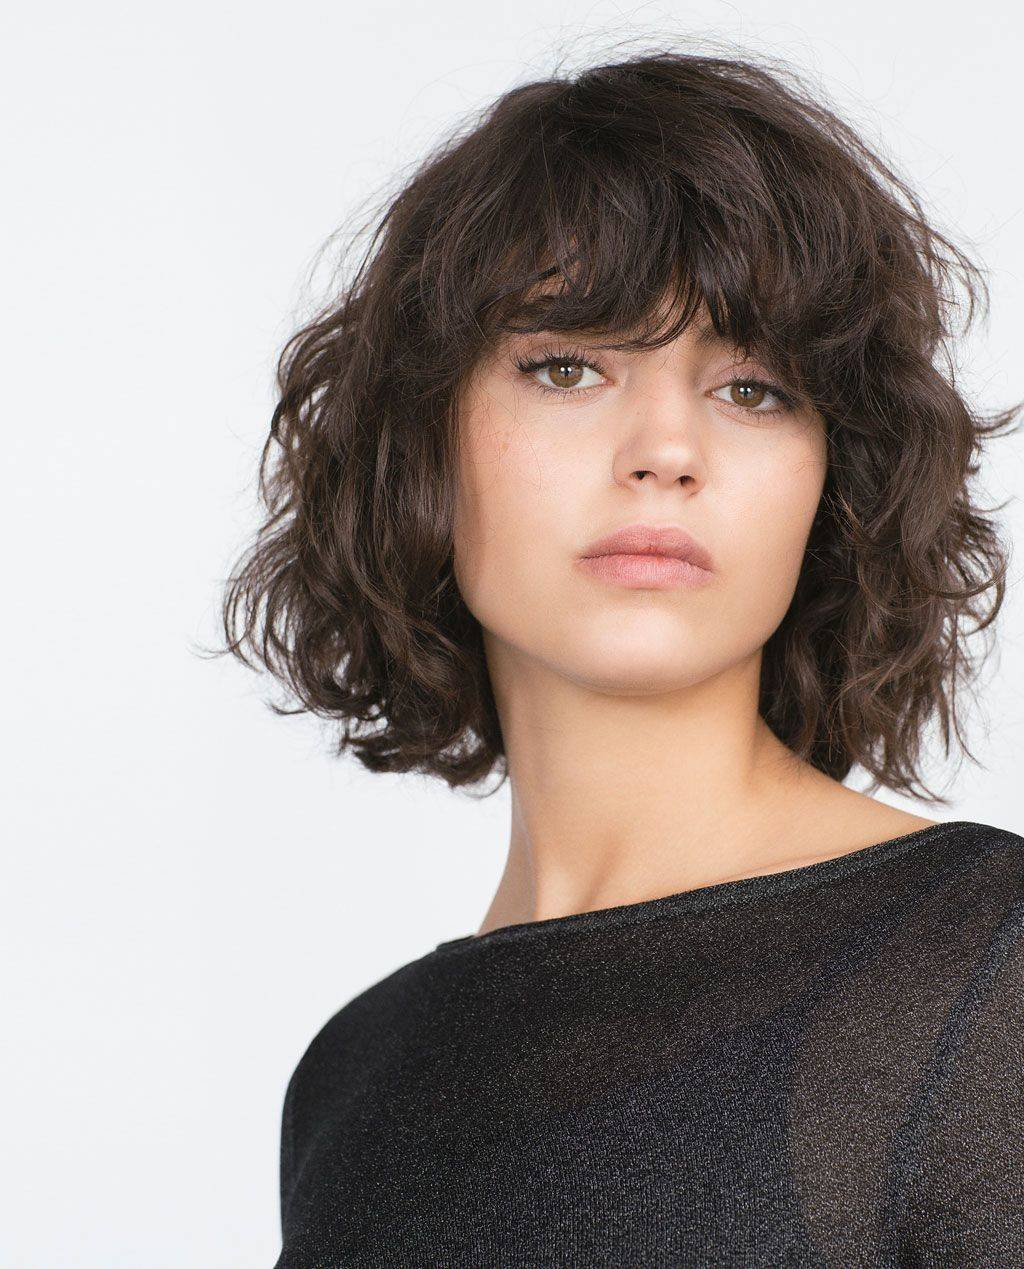 Woman with curly hair and bangs